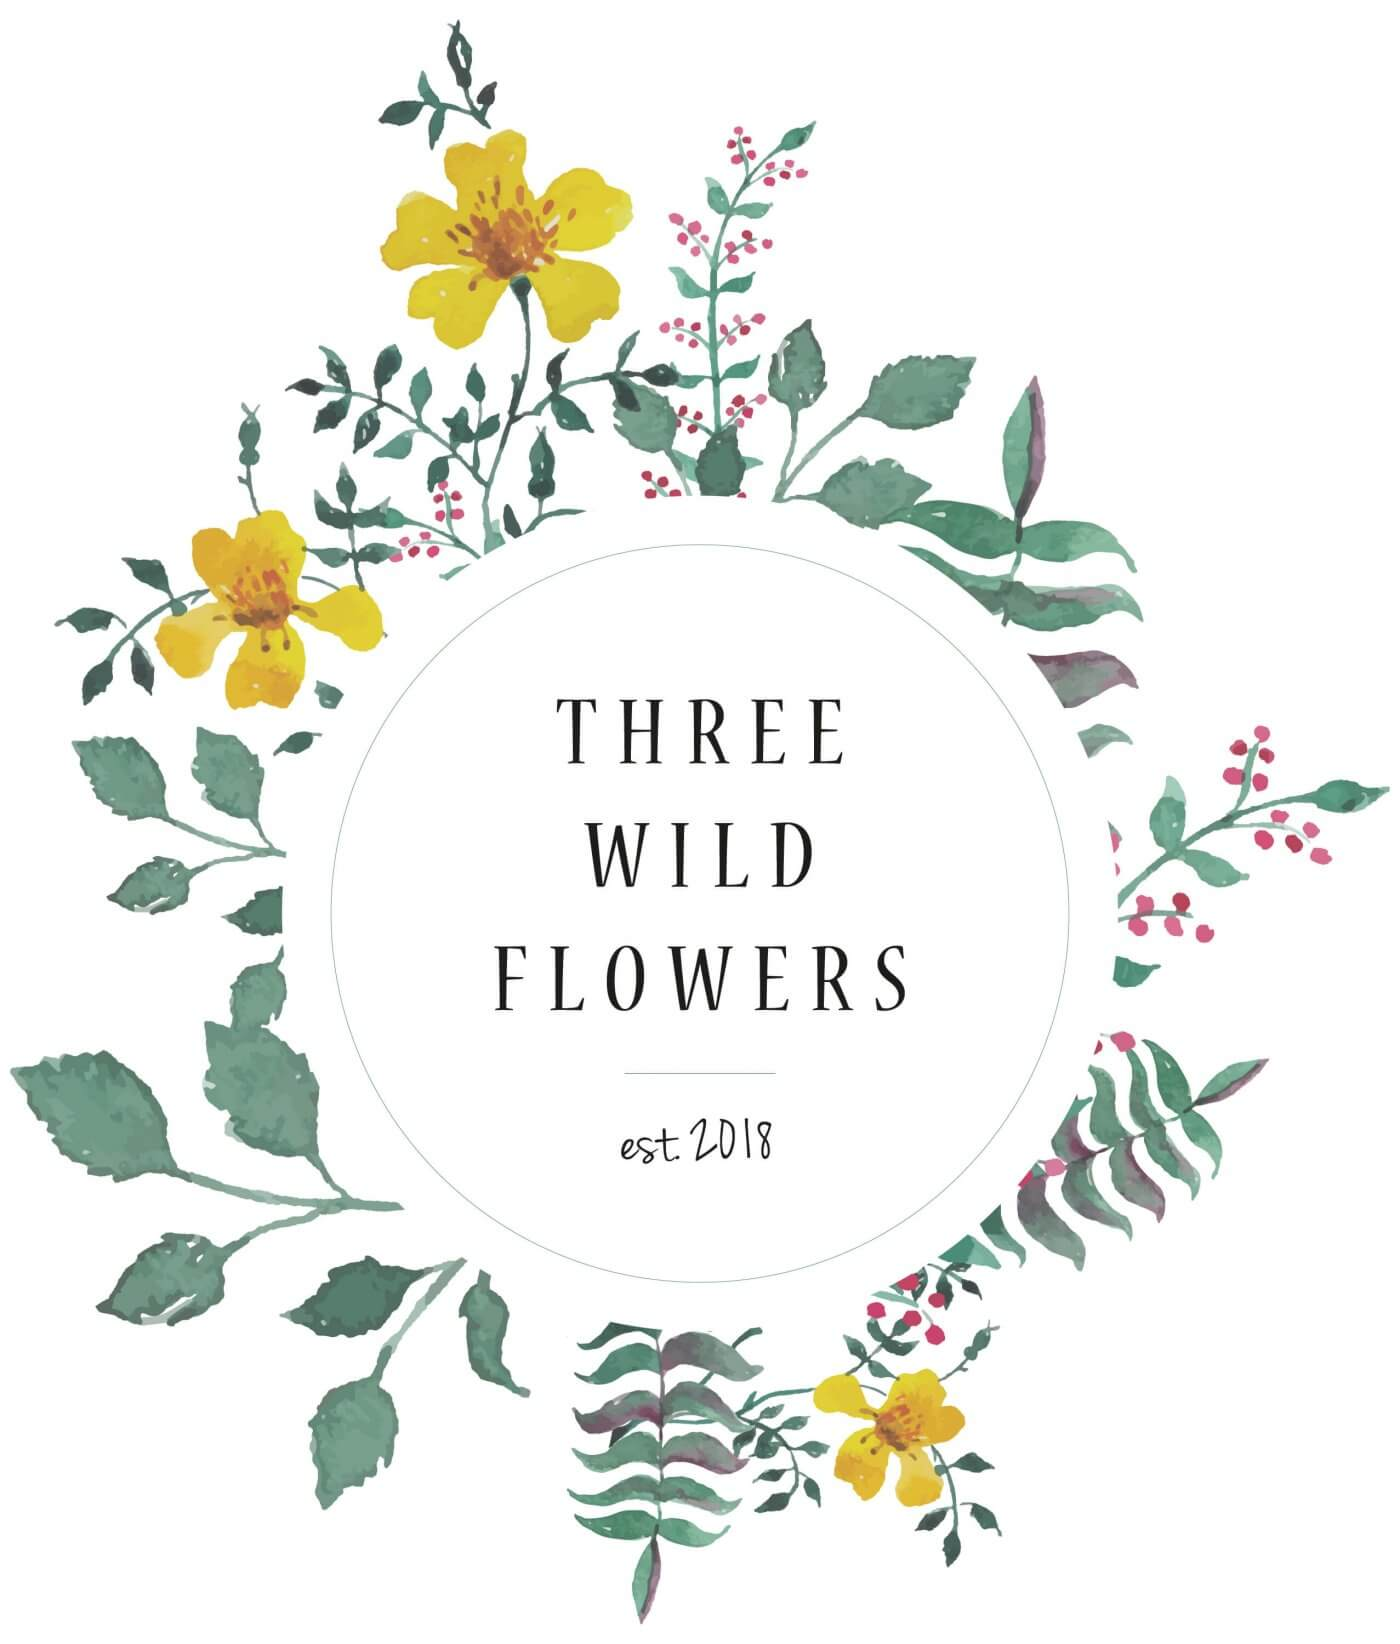 Three Wild Flowers Logo | The Mustcard